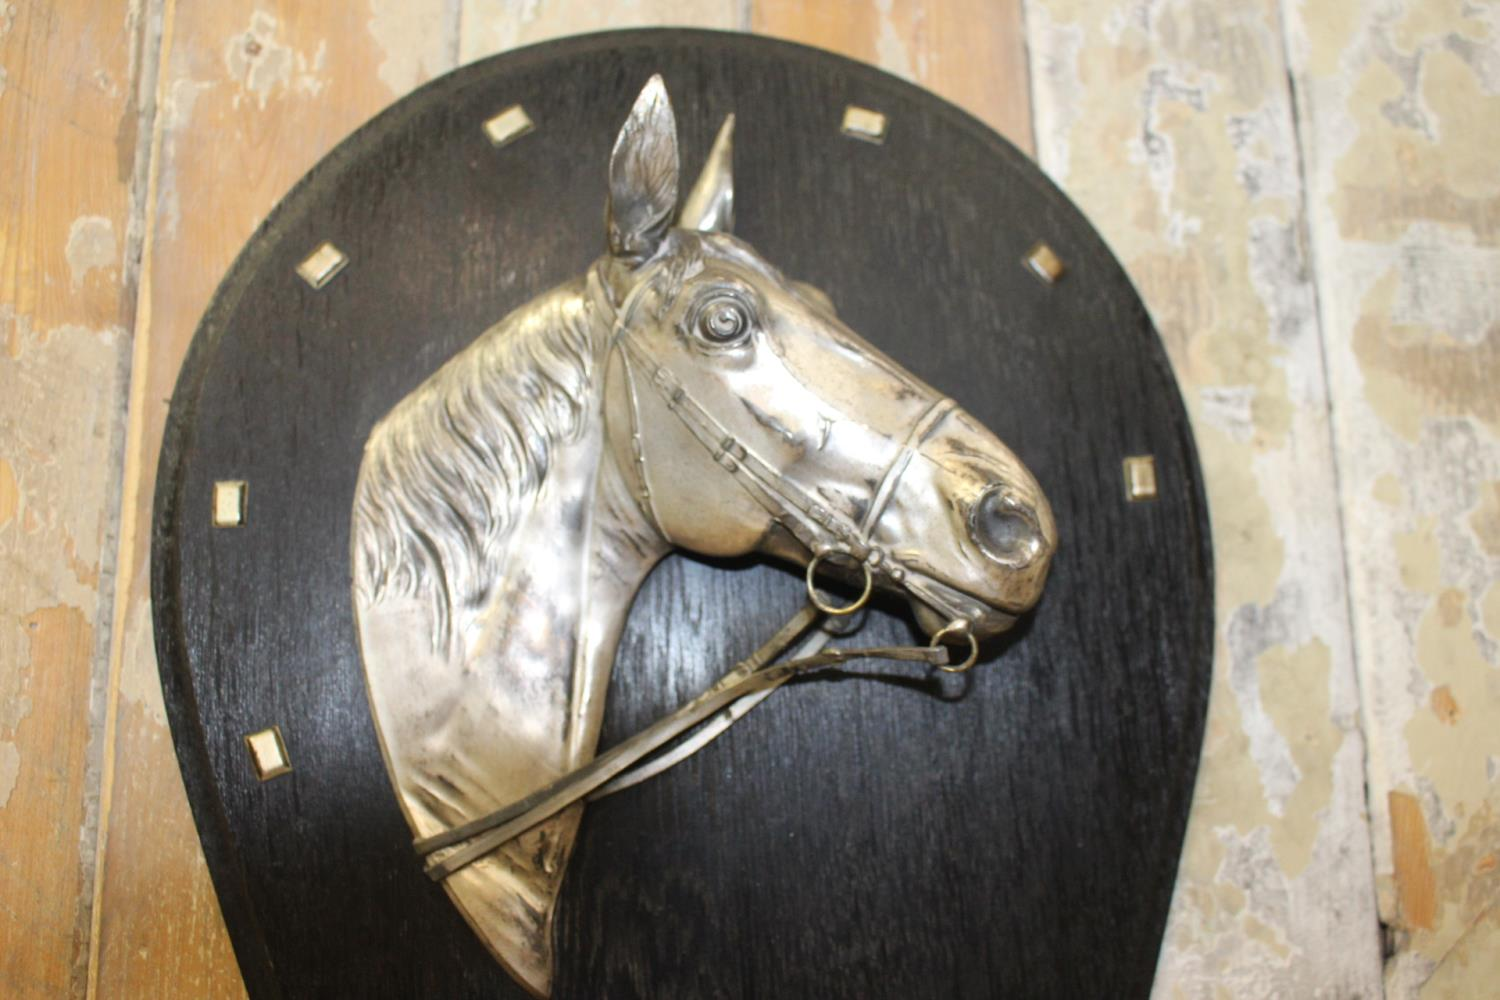 Pair of silver plated horse's head - Image 2 of 2